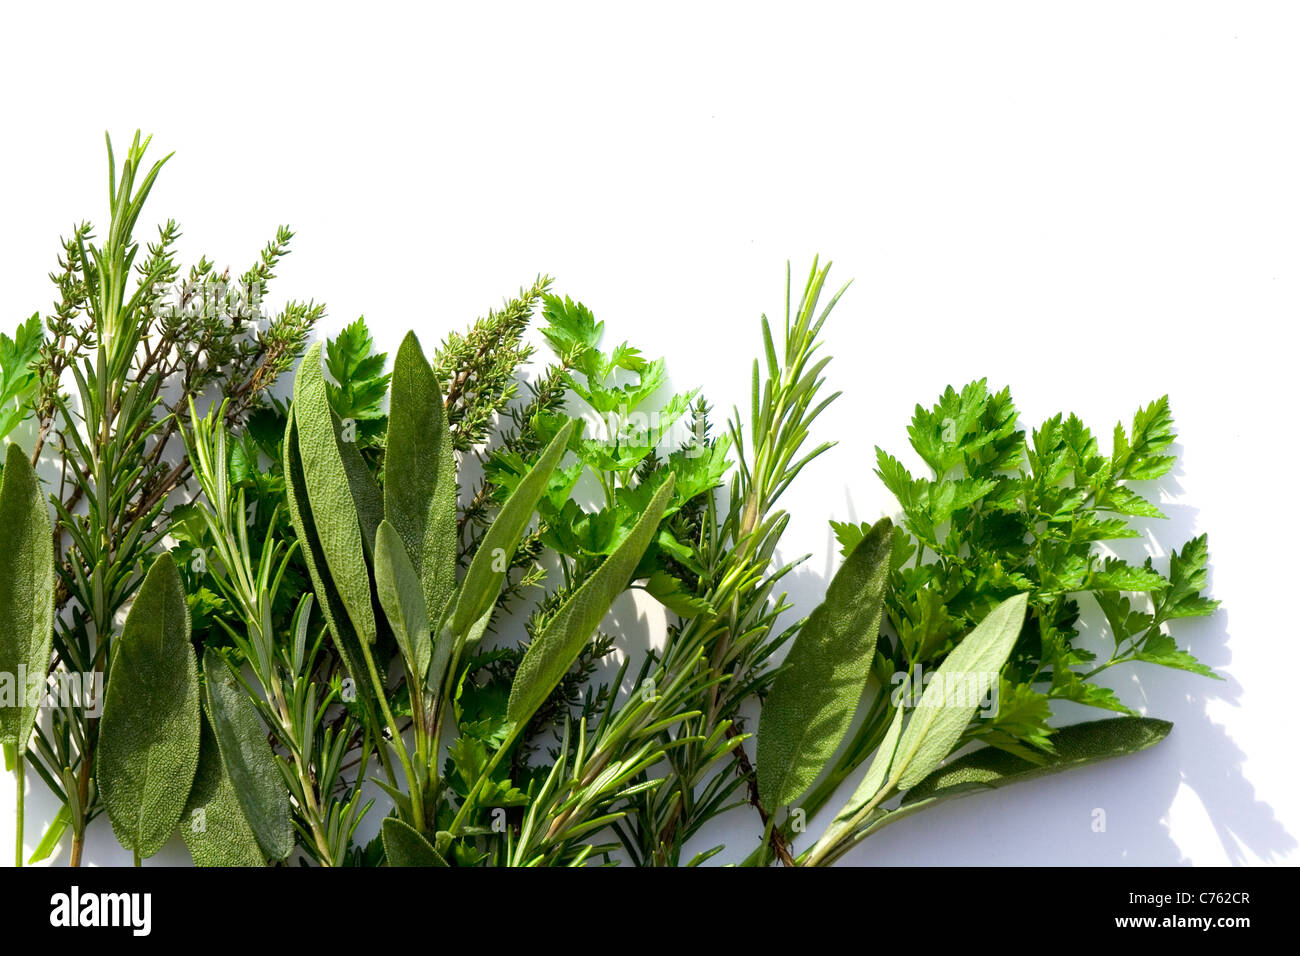 A green posey of parsley, sage, rosemary and thyme make a decorative border, isolated against white background for - Stock Image